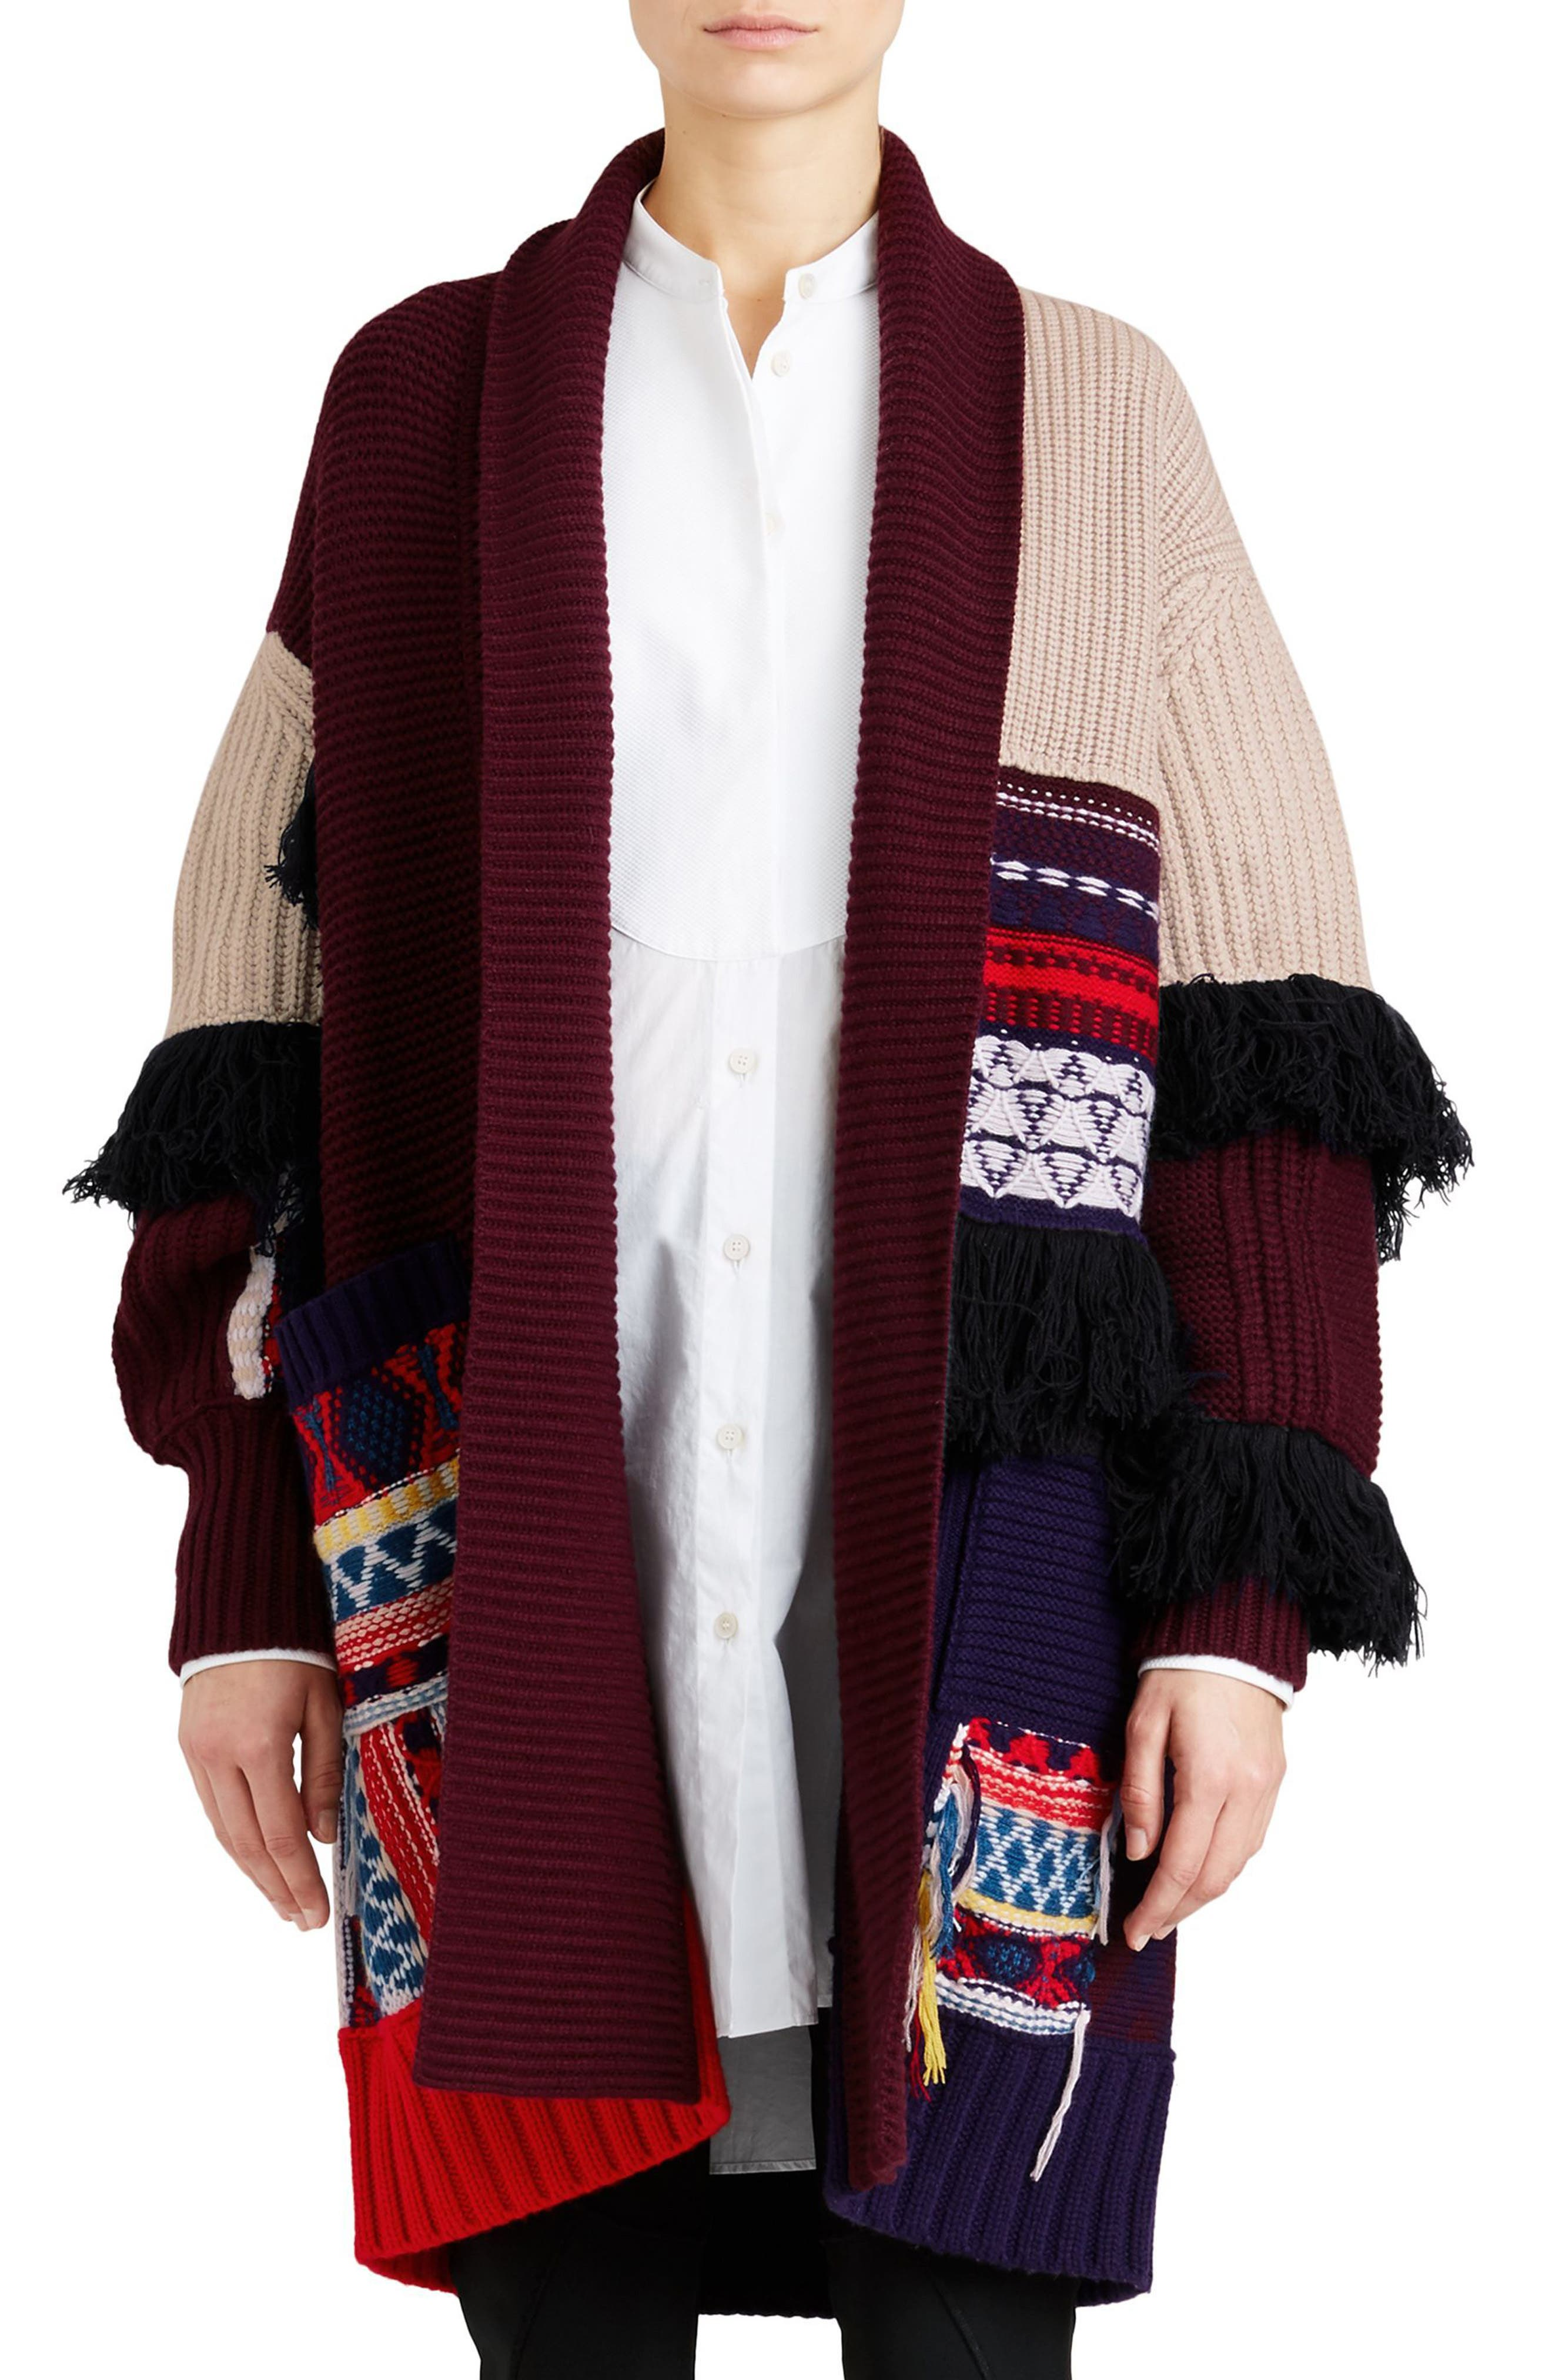 Rotaldo Wool & Cashmere Patchwork Cardigan,                             Main thumbnail 1, color,                             103